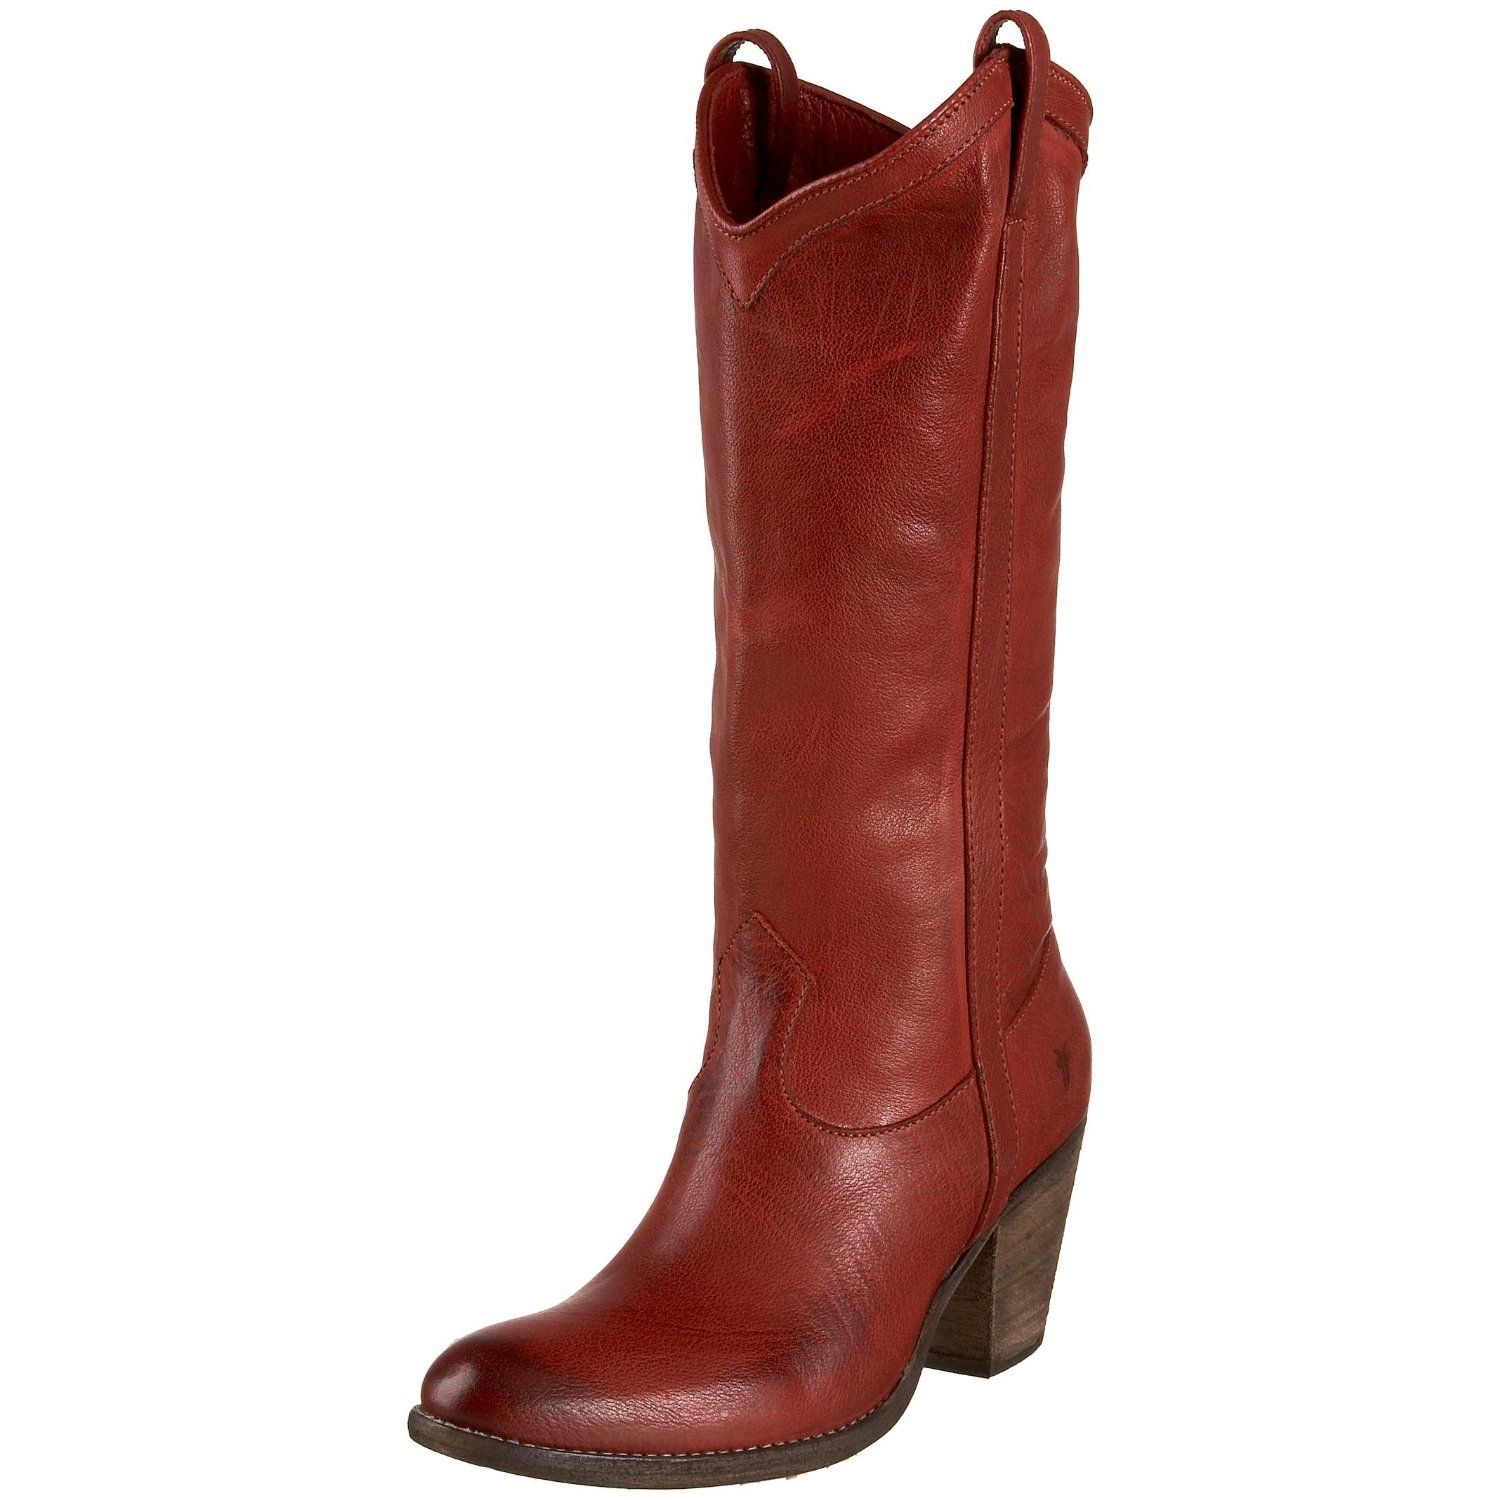 2b99b0cdd81 Julianne Hough wore these EXACT boots in the Footloose remake. Their  woman s Frye Taylor pull on boots in burnt red